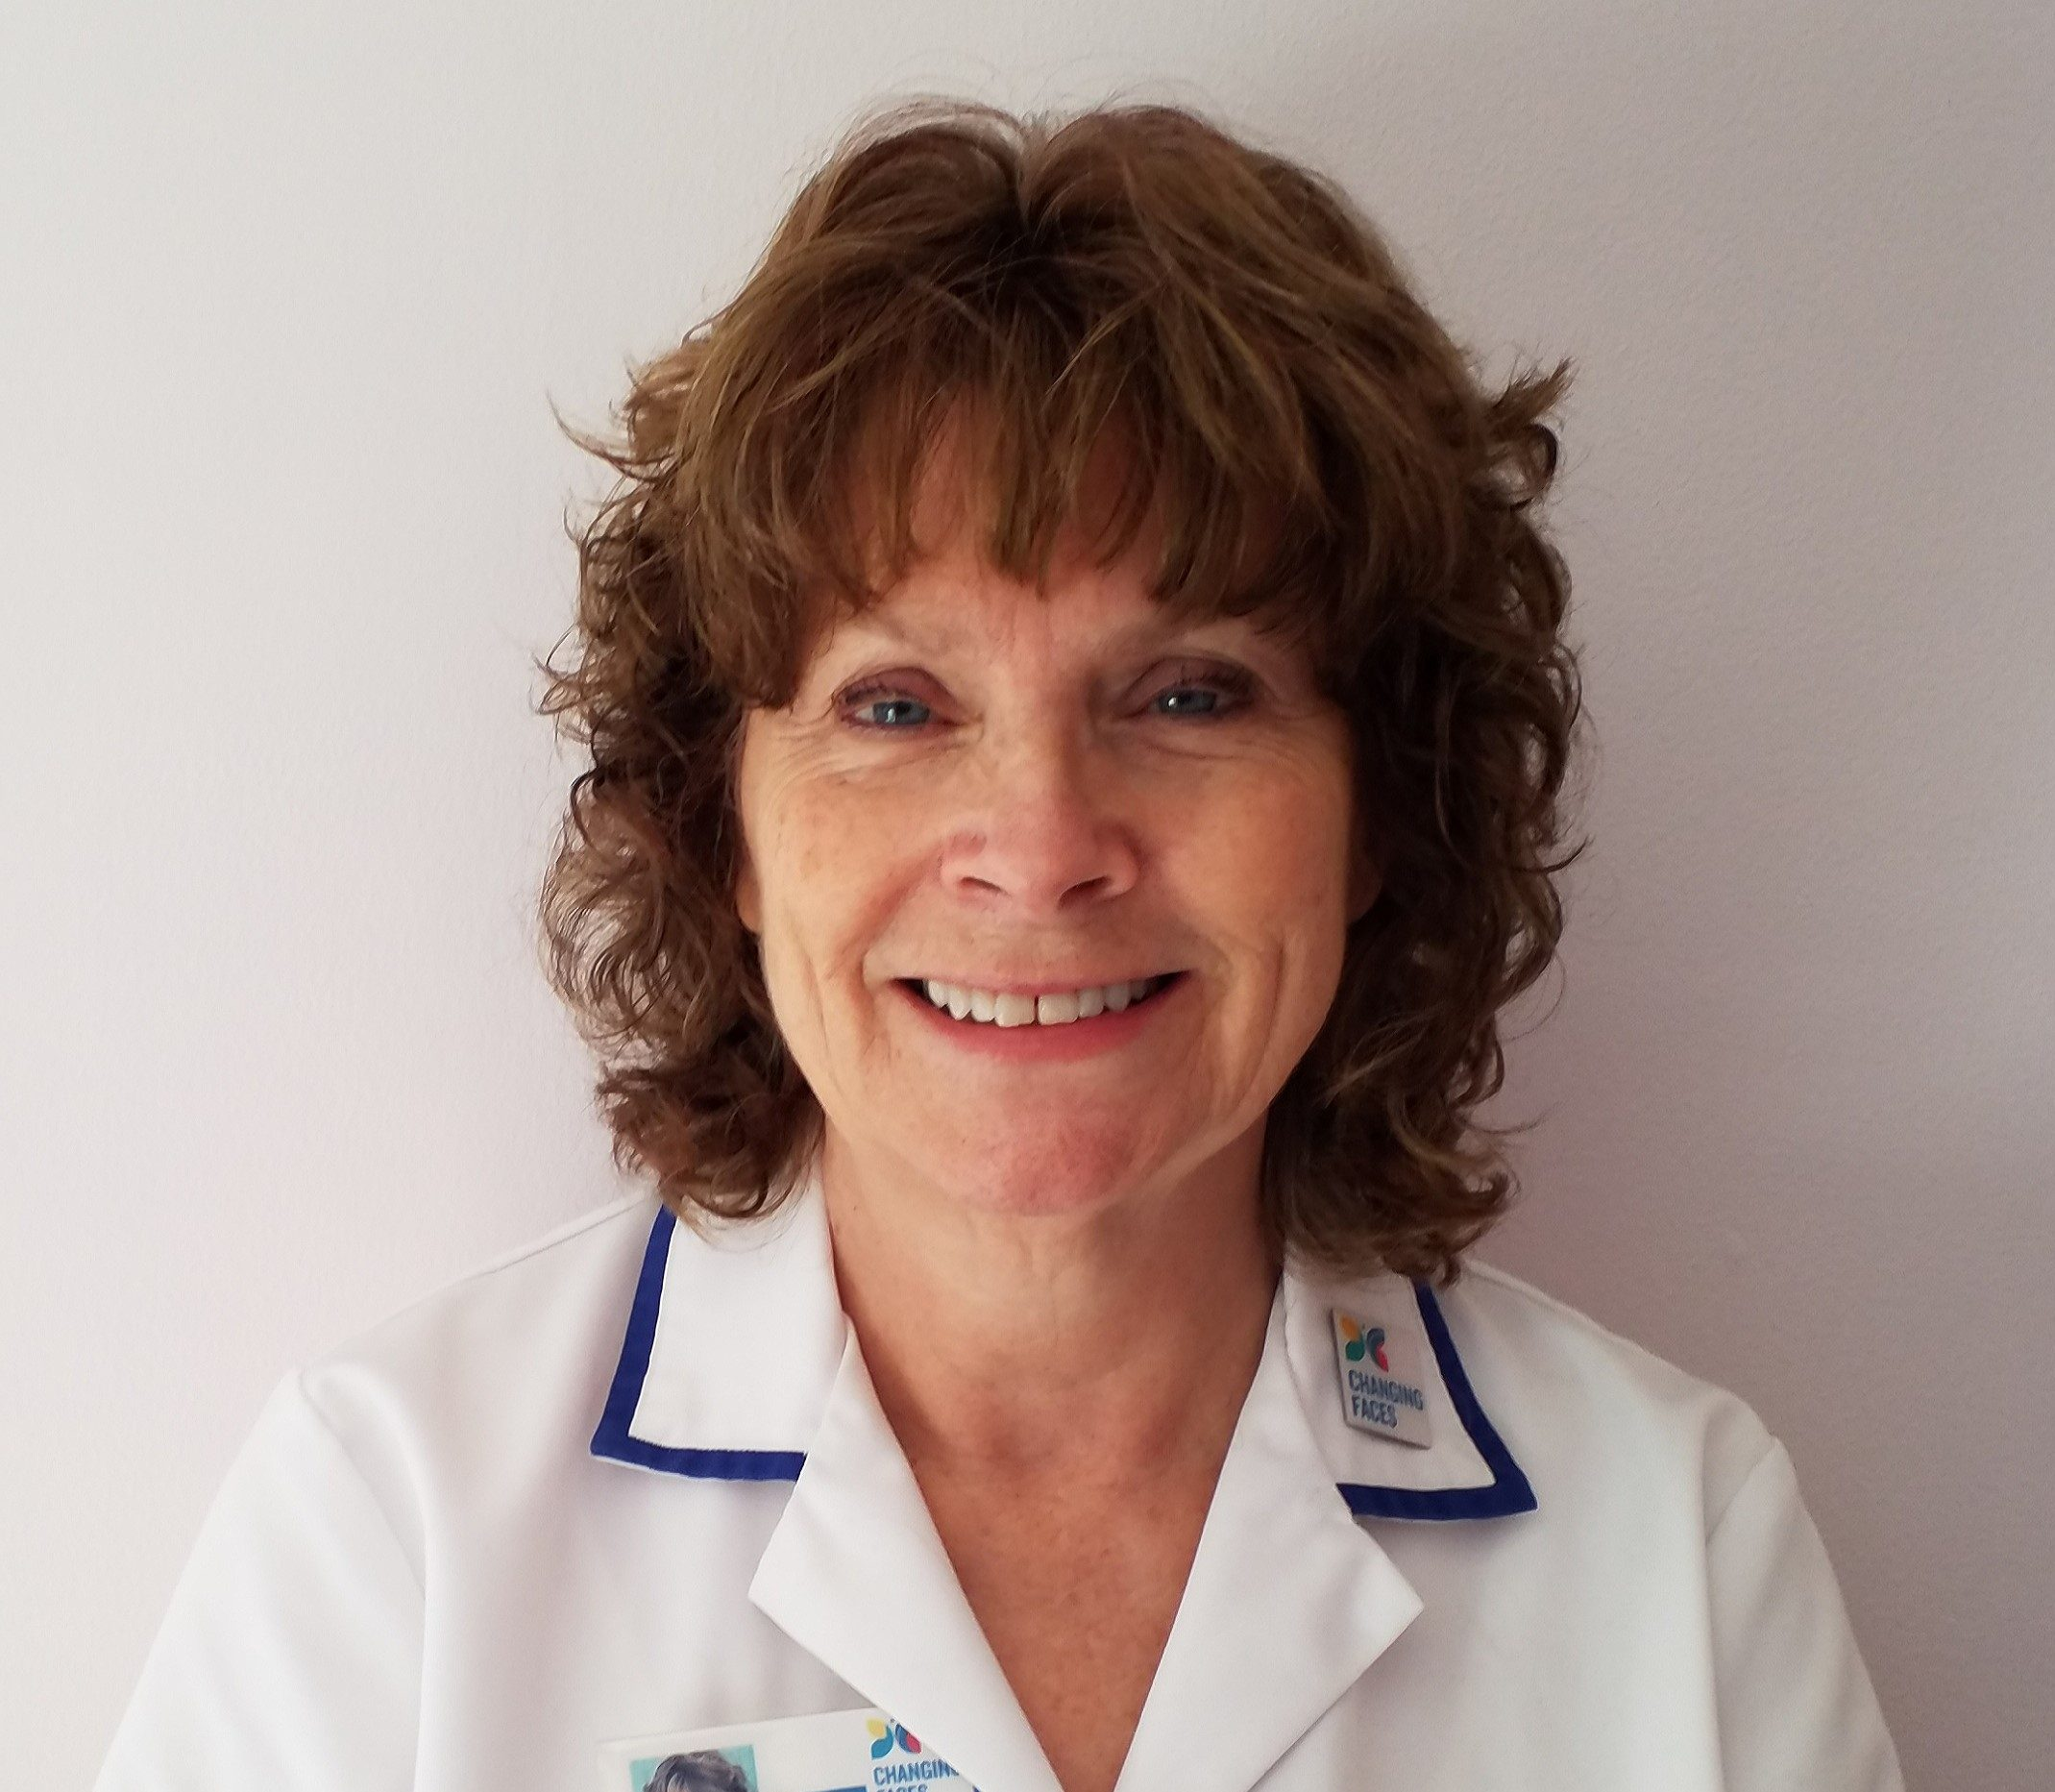 A skin camouflage practitioner wearing a white medical coat with a Changing Faces badge, smiles at the camera. She has short curly hair.